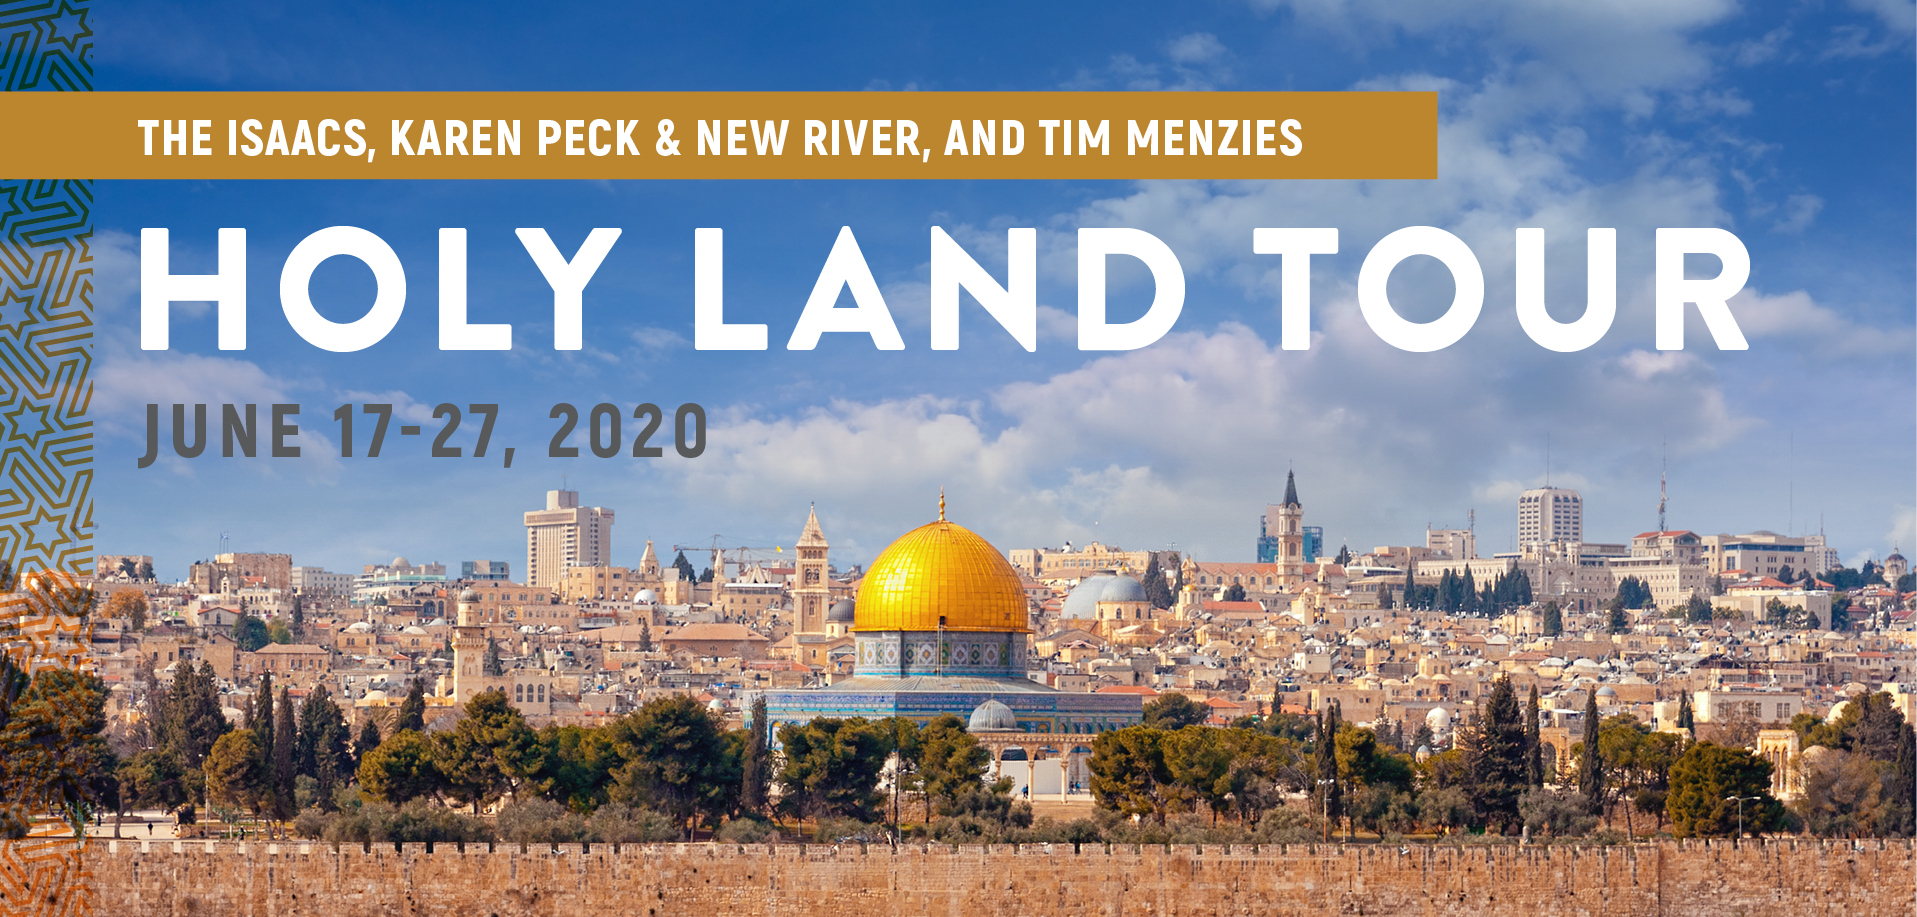 Take a Christian TourWOX with The Isaacs - Israel Tour - June 17-27, 2020